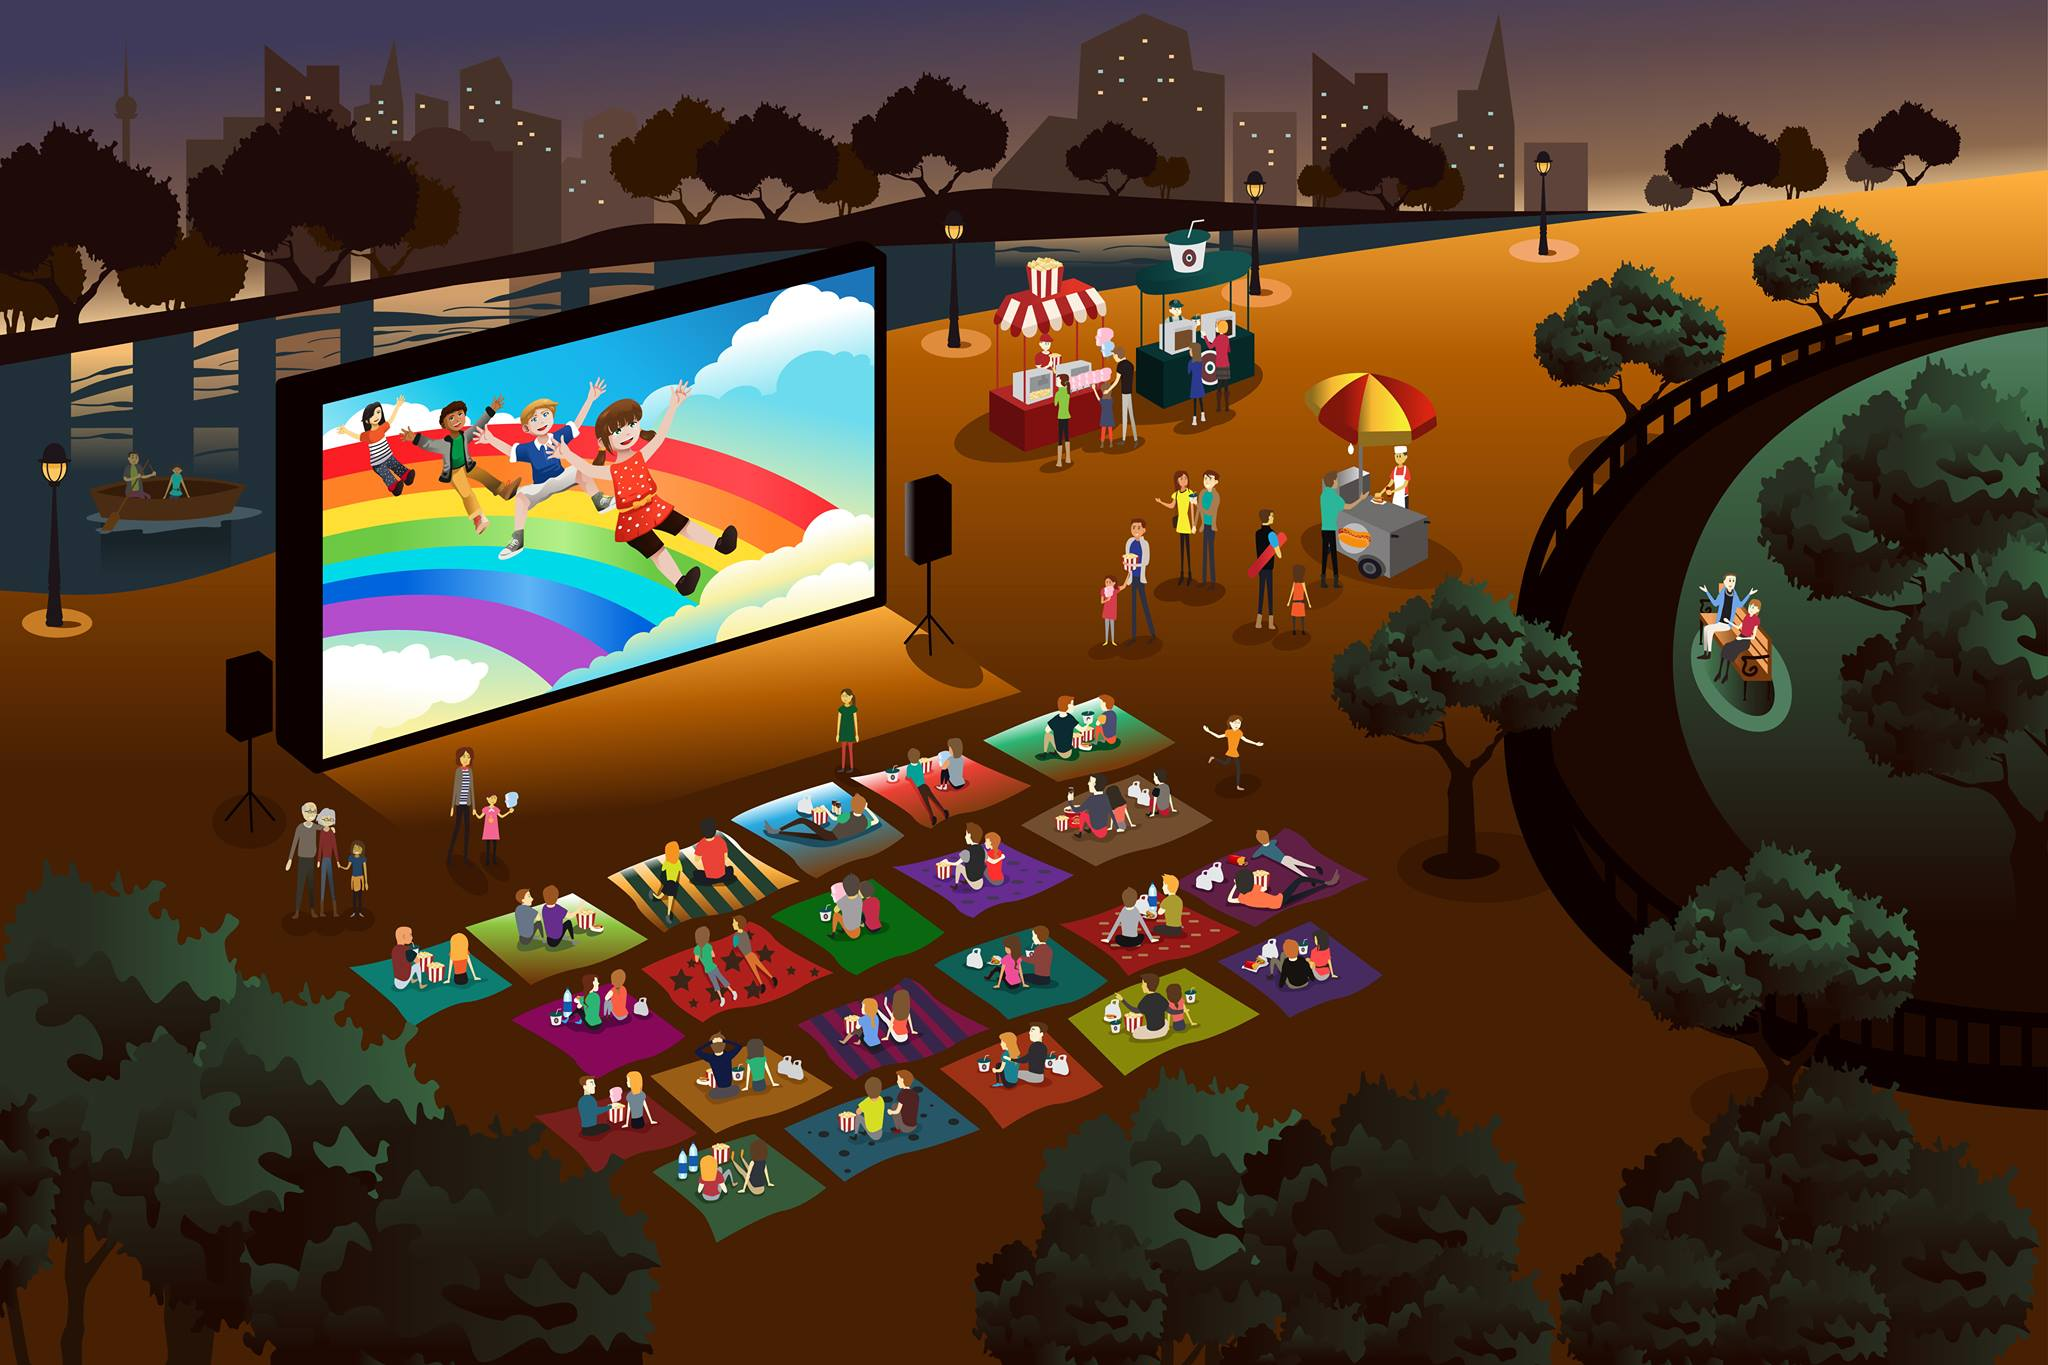 graphic of families enjoying an outdoor movie in a park